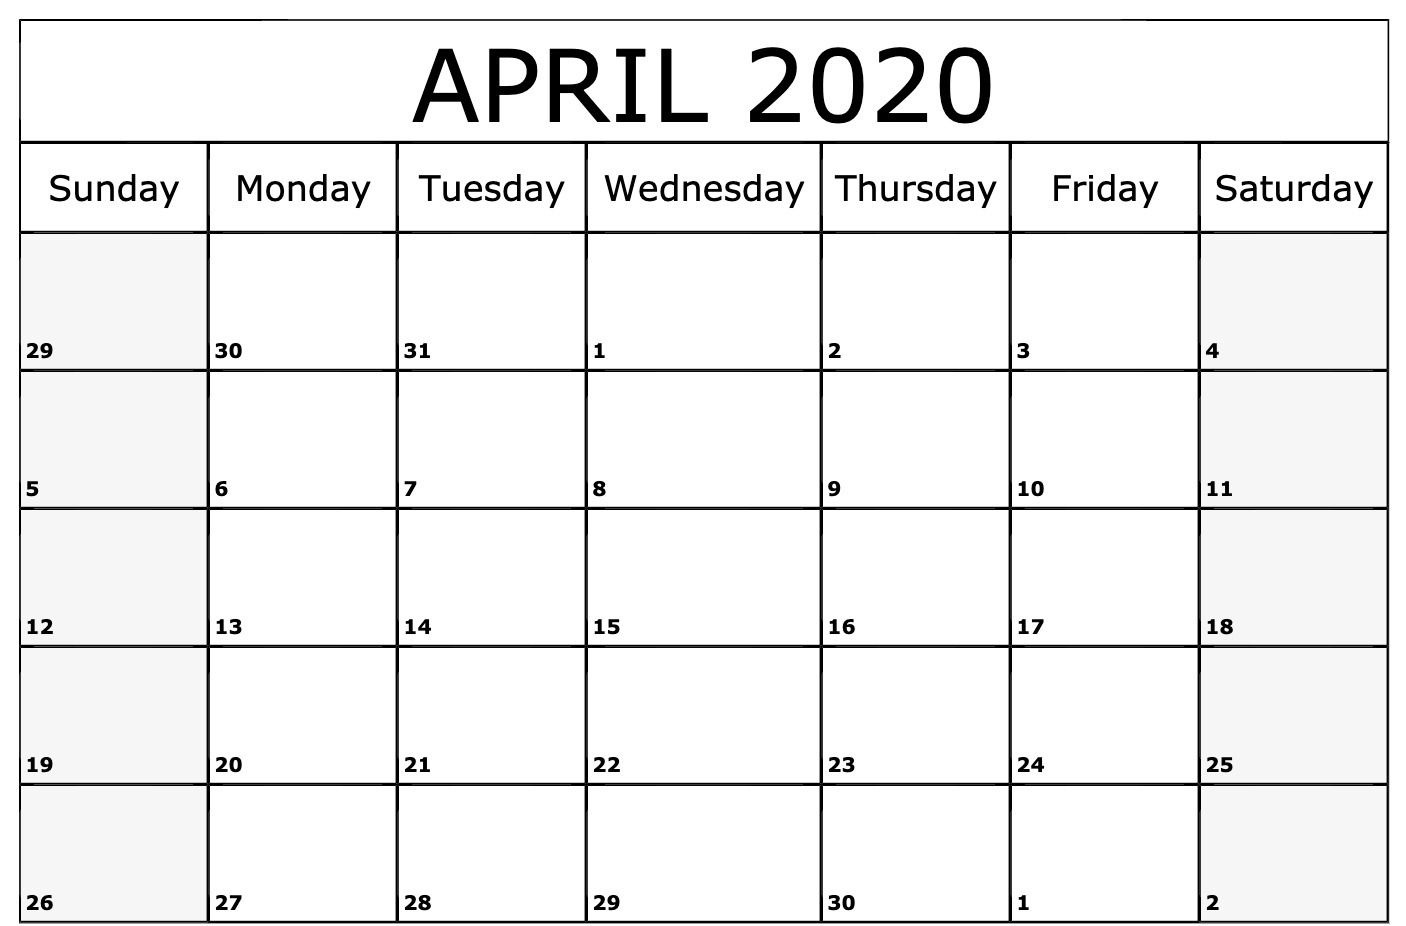 April 2020 Calendar Printable Template | Free Printable